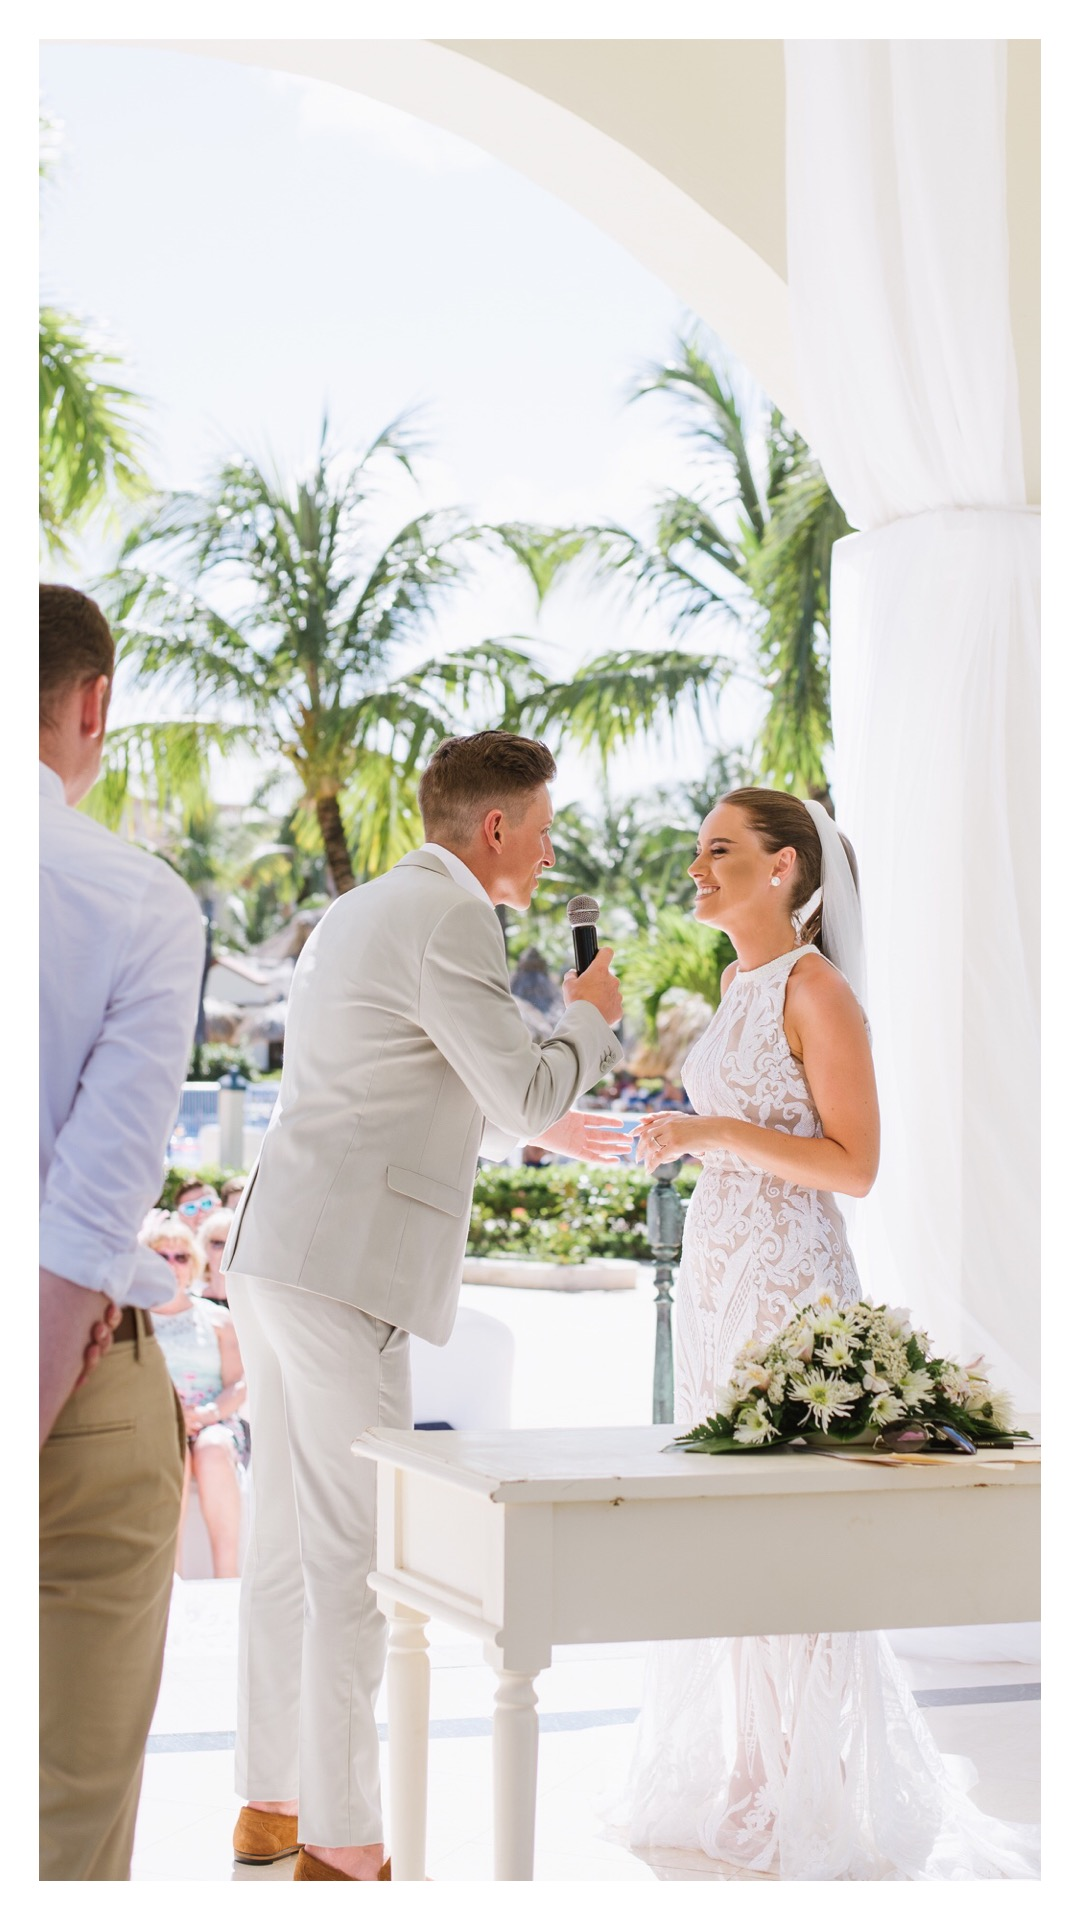 A Colorful Destination Wedding in Punta Cana, Dominican Republic | Halifax Wedding Photographer